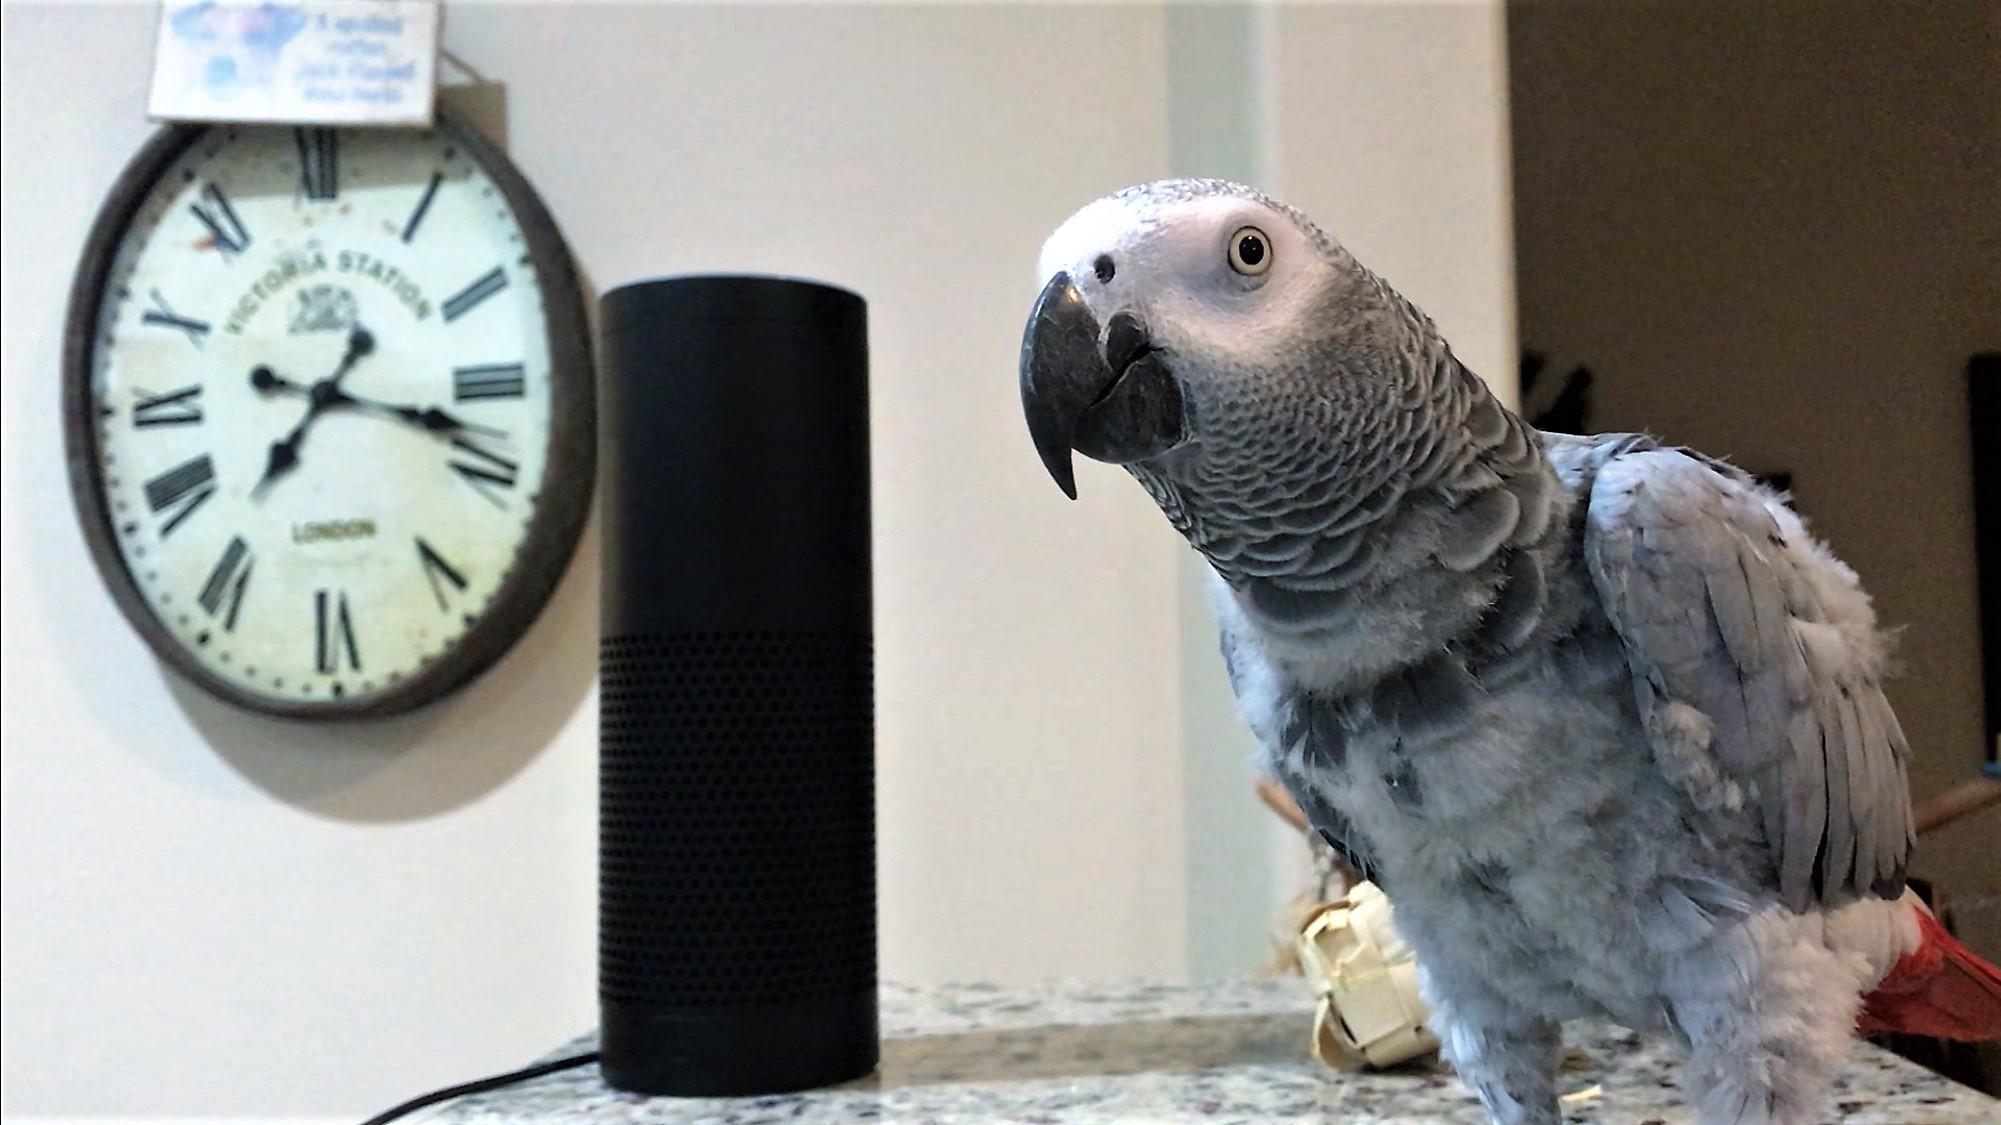 These days even pets have competition where obeying voice commands are concerned